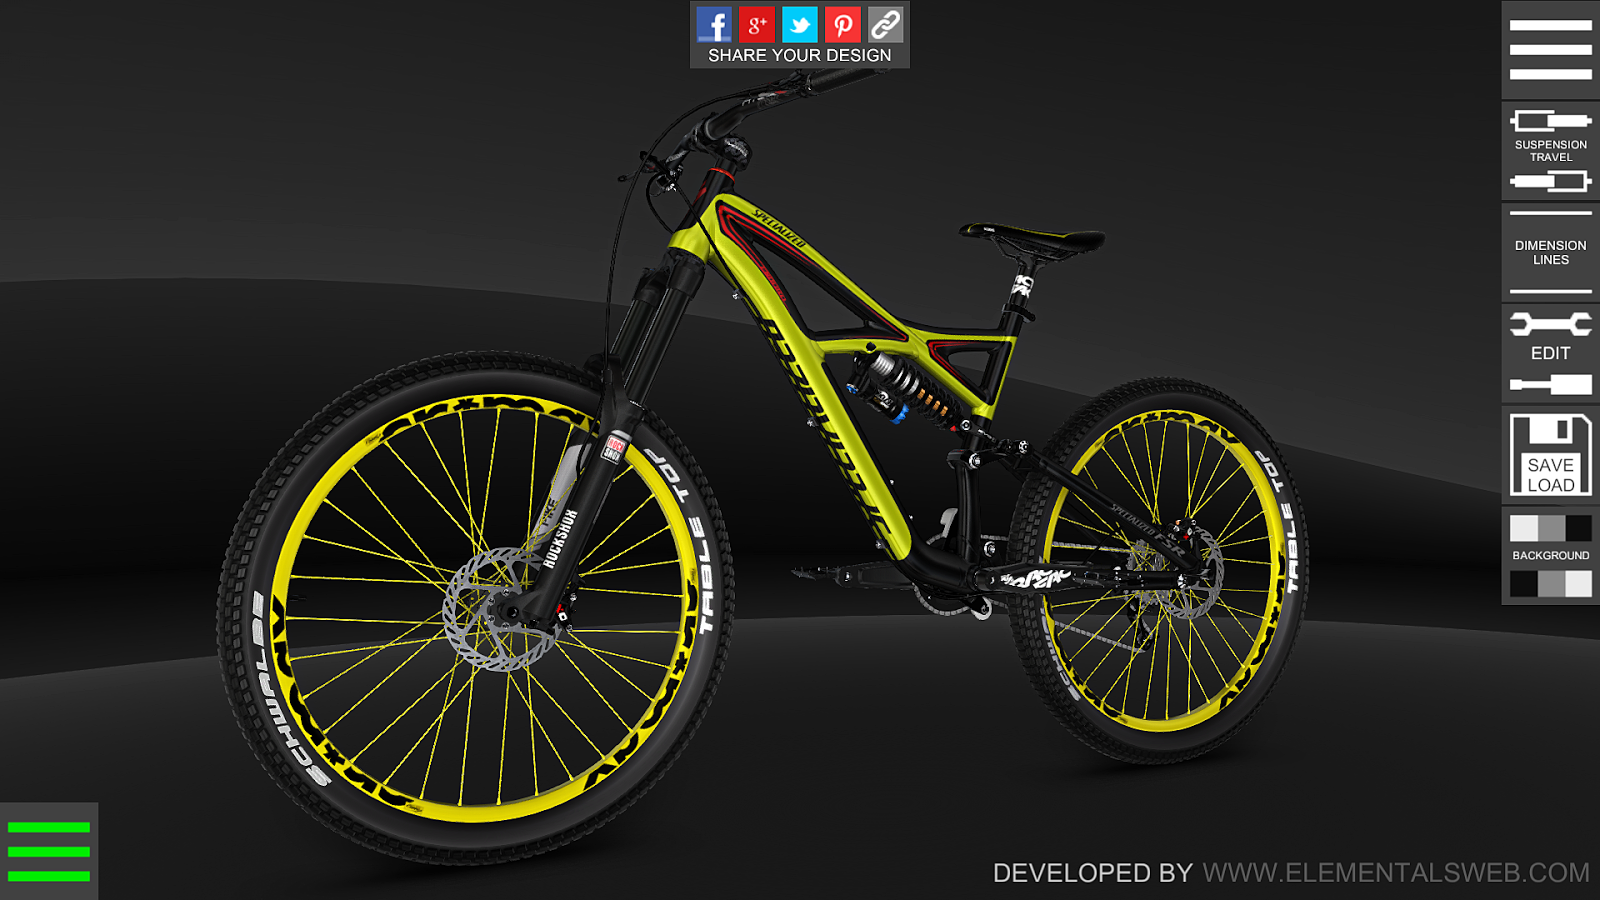 bike 3d configurator 1 5 1 apk download android sports games bike 3d configurator 1 5 1 screenshot 2